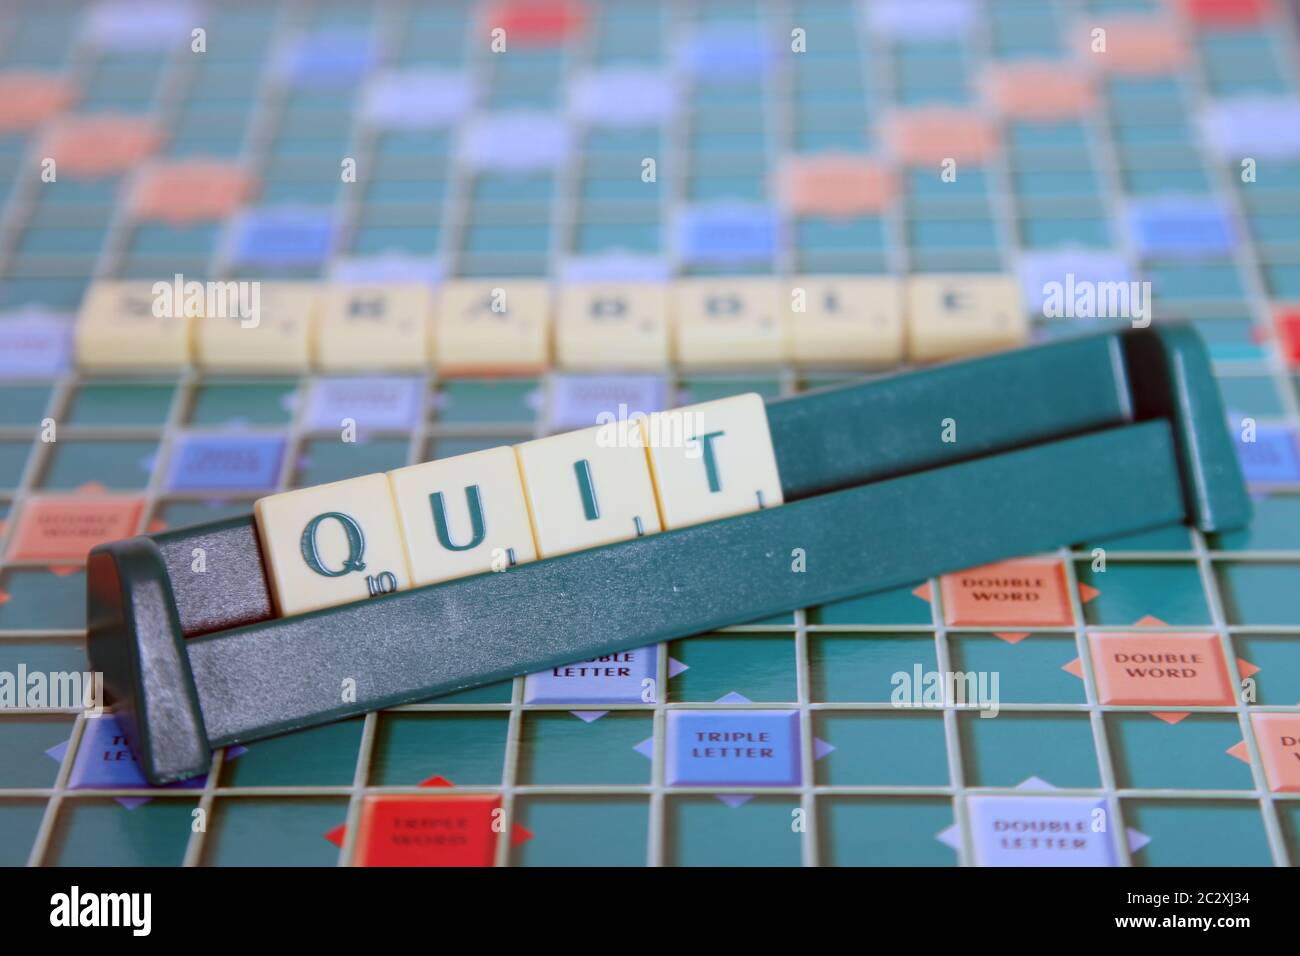 Scrabble Words High Resolution Stock Photography And Images Alamy